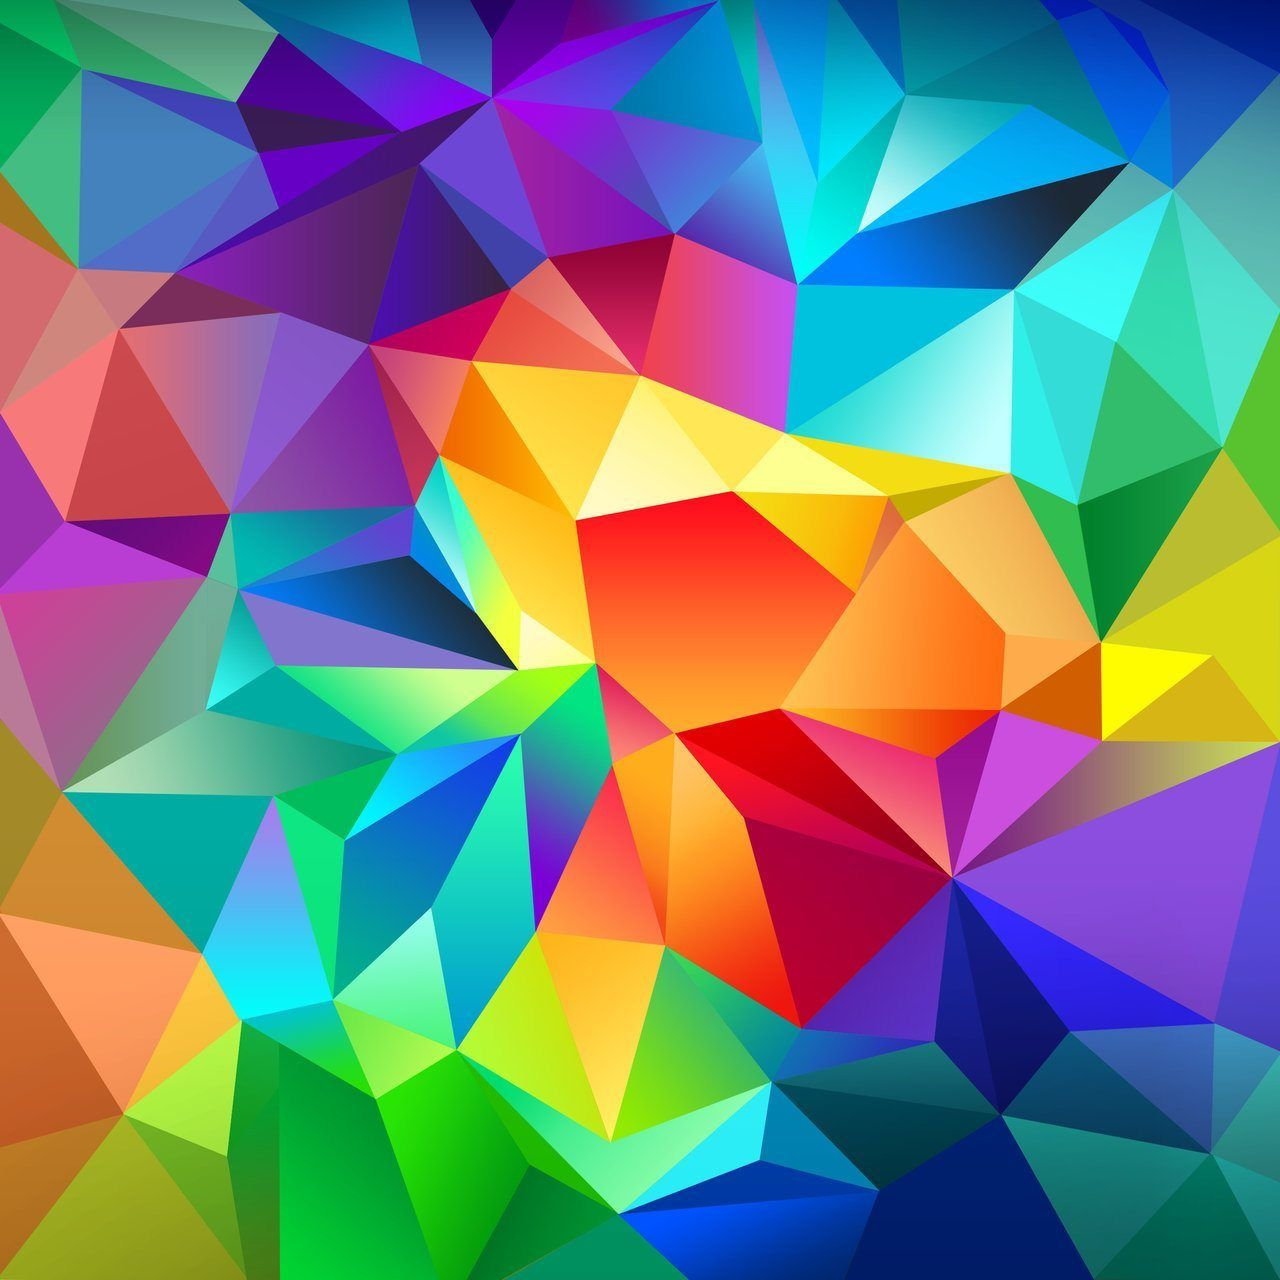 Pattern, Android, Orange, Blue, 4k, Background, Triangle, - HD Wallpaper